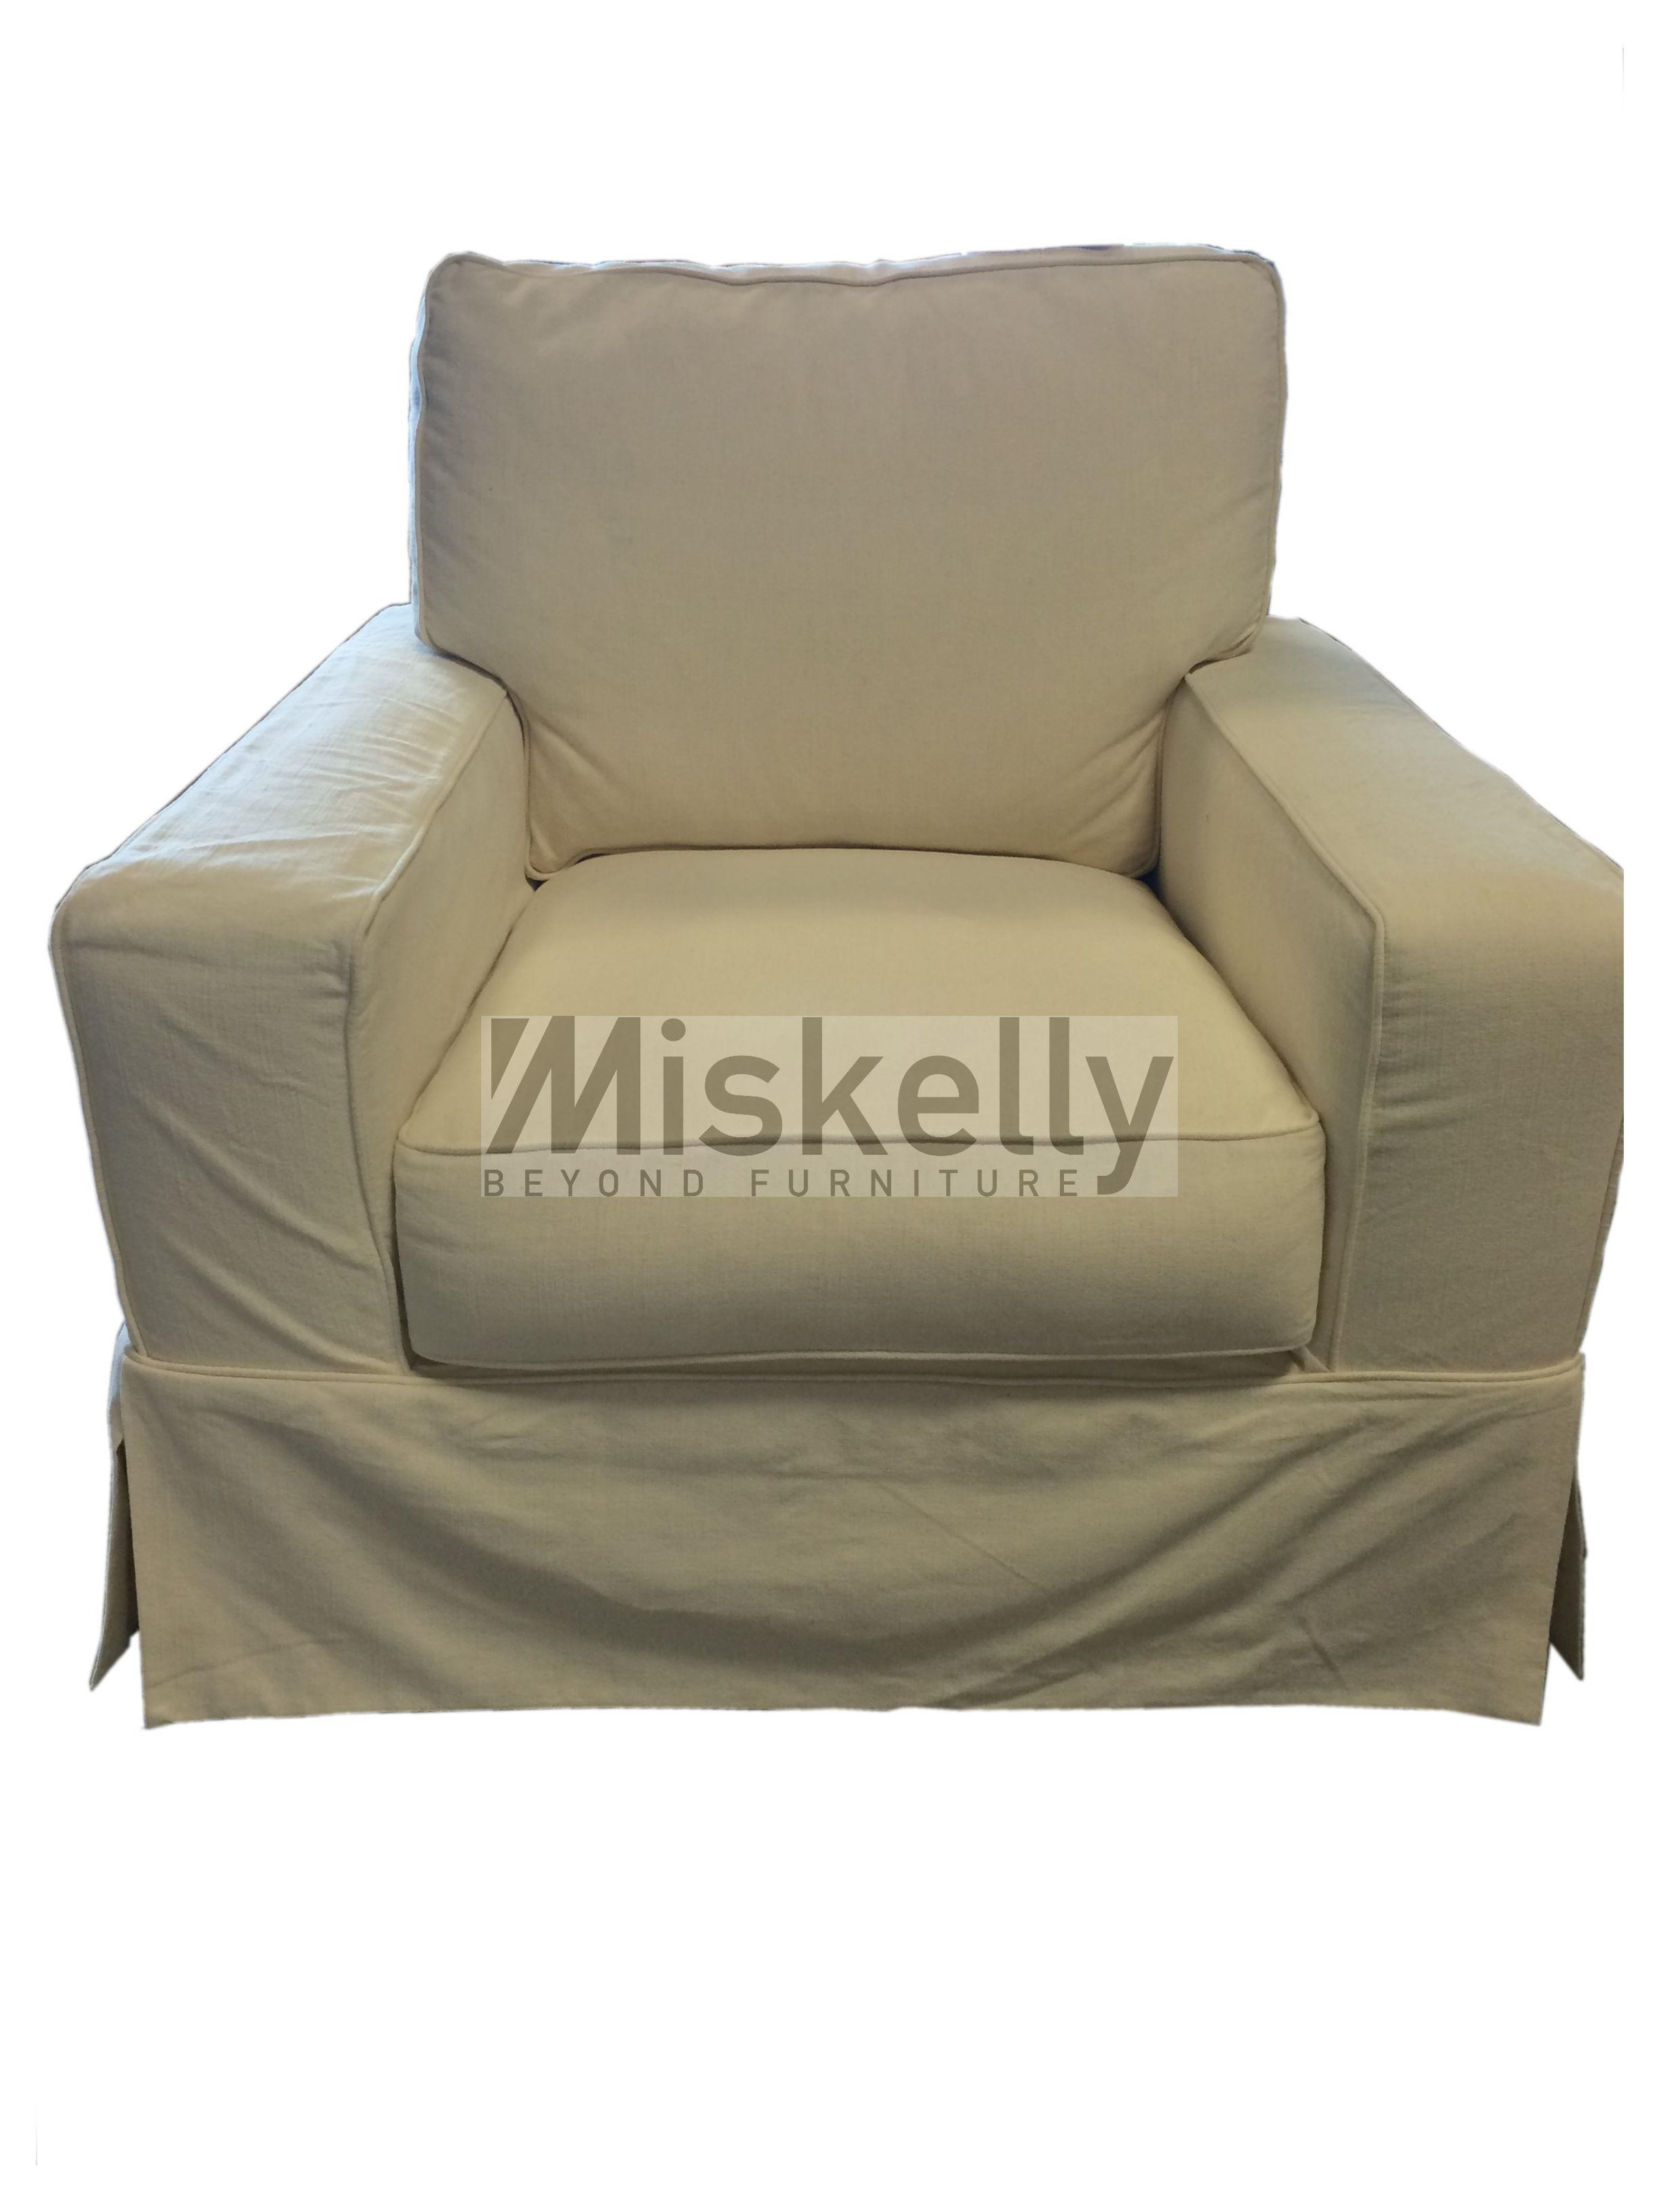 Synergy Home Furnishings Montague Cream Eclectic Slipcover Chair